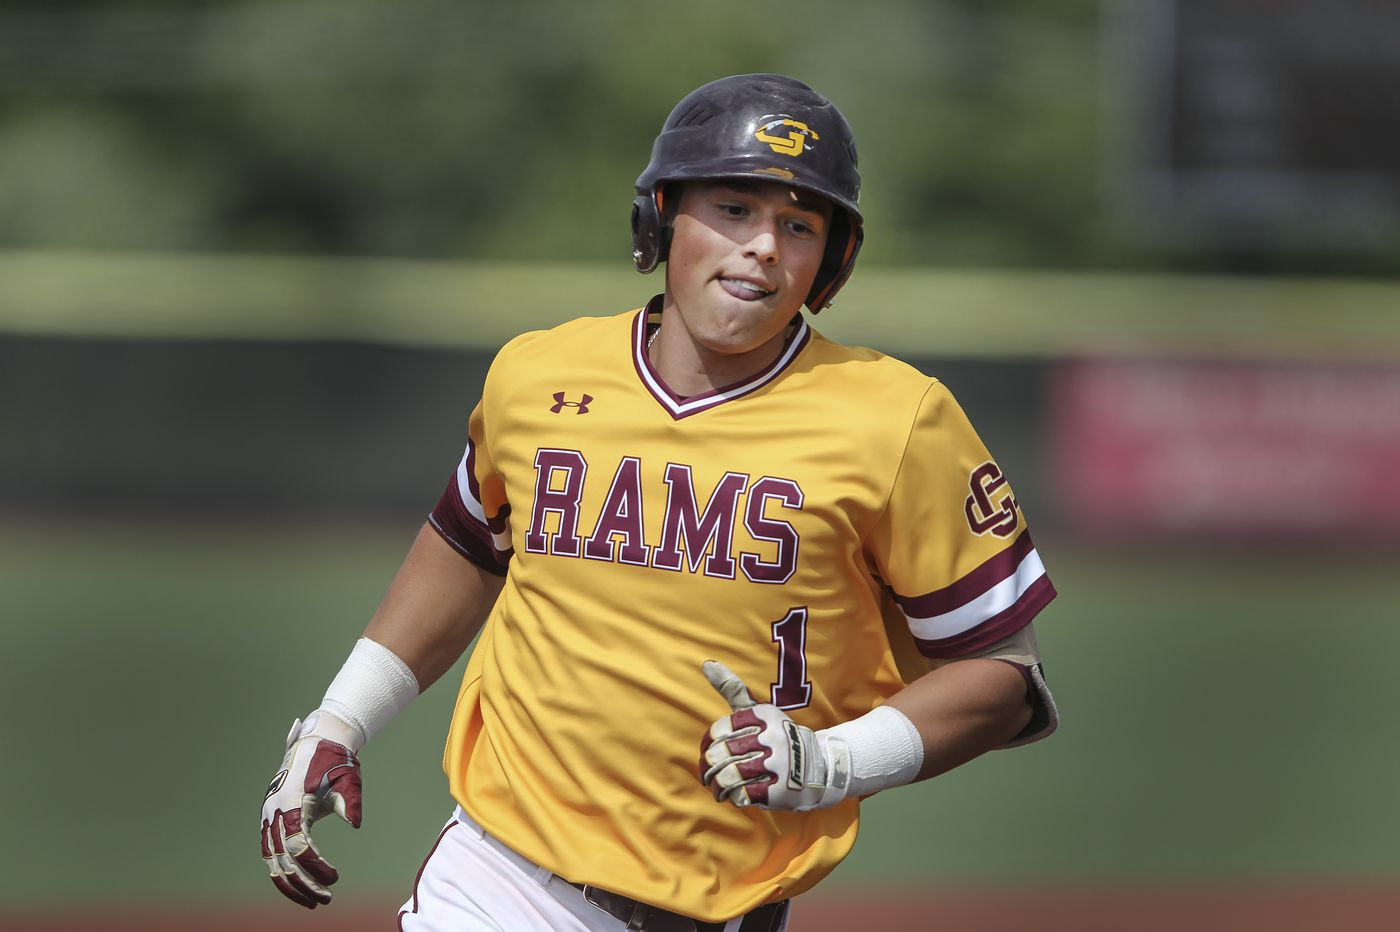 Gloucester Catholic's Evan Giordano is the South Jersey baseball player of the year